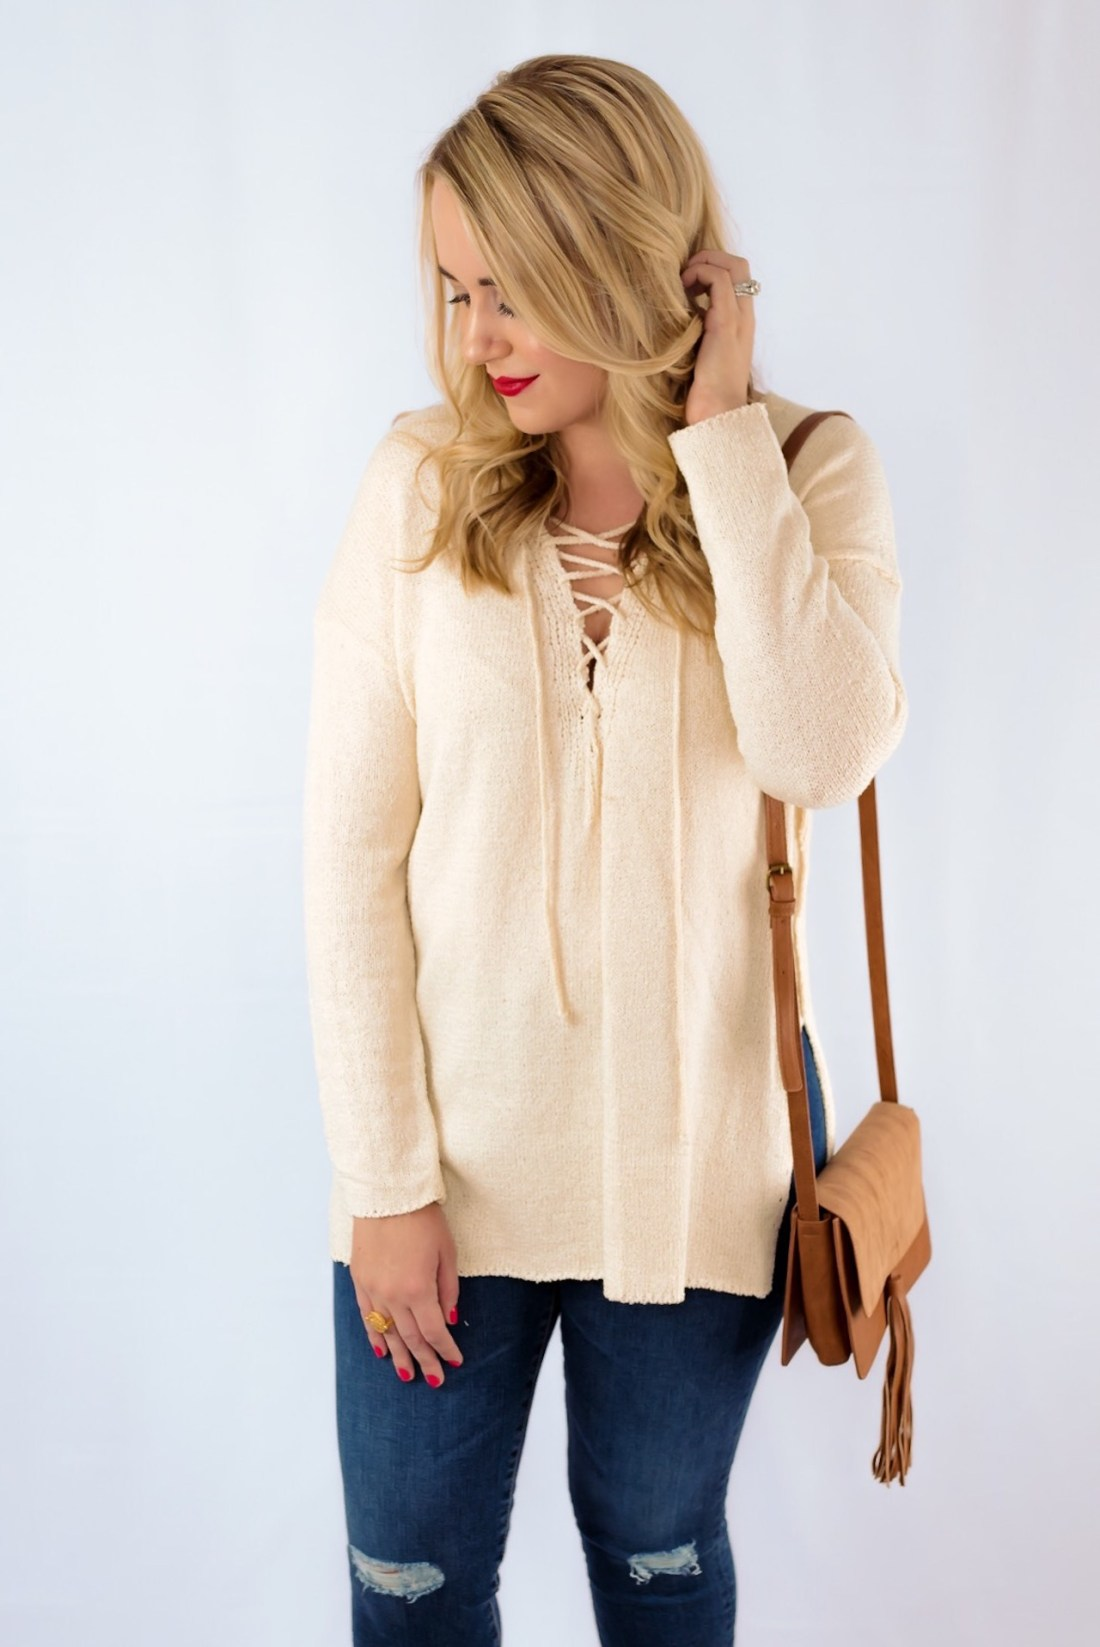 ASTR Lace Up Sweater Fancy Things Red Lip